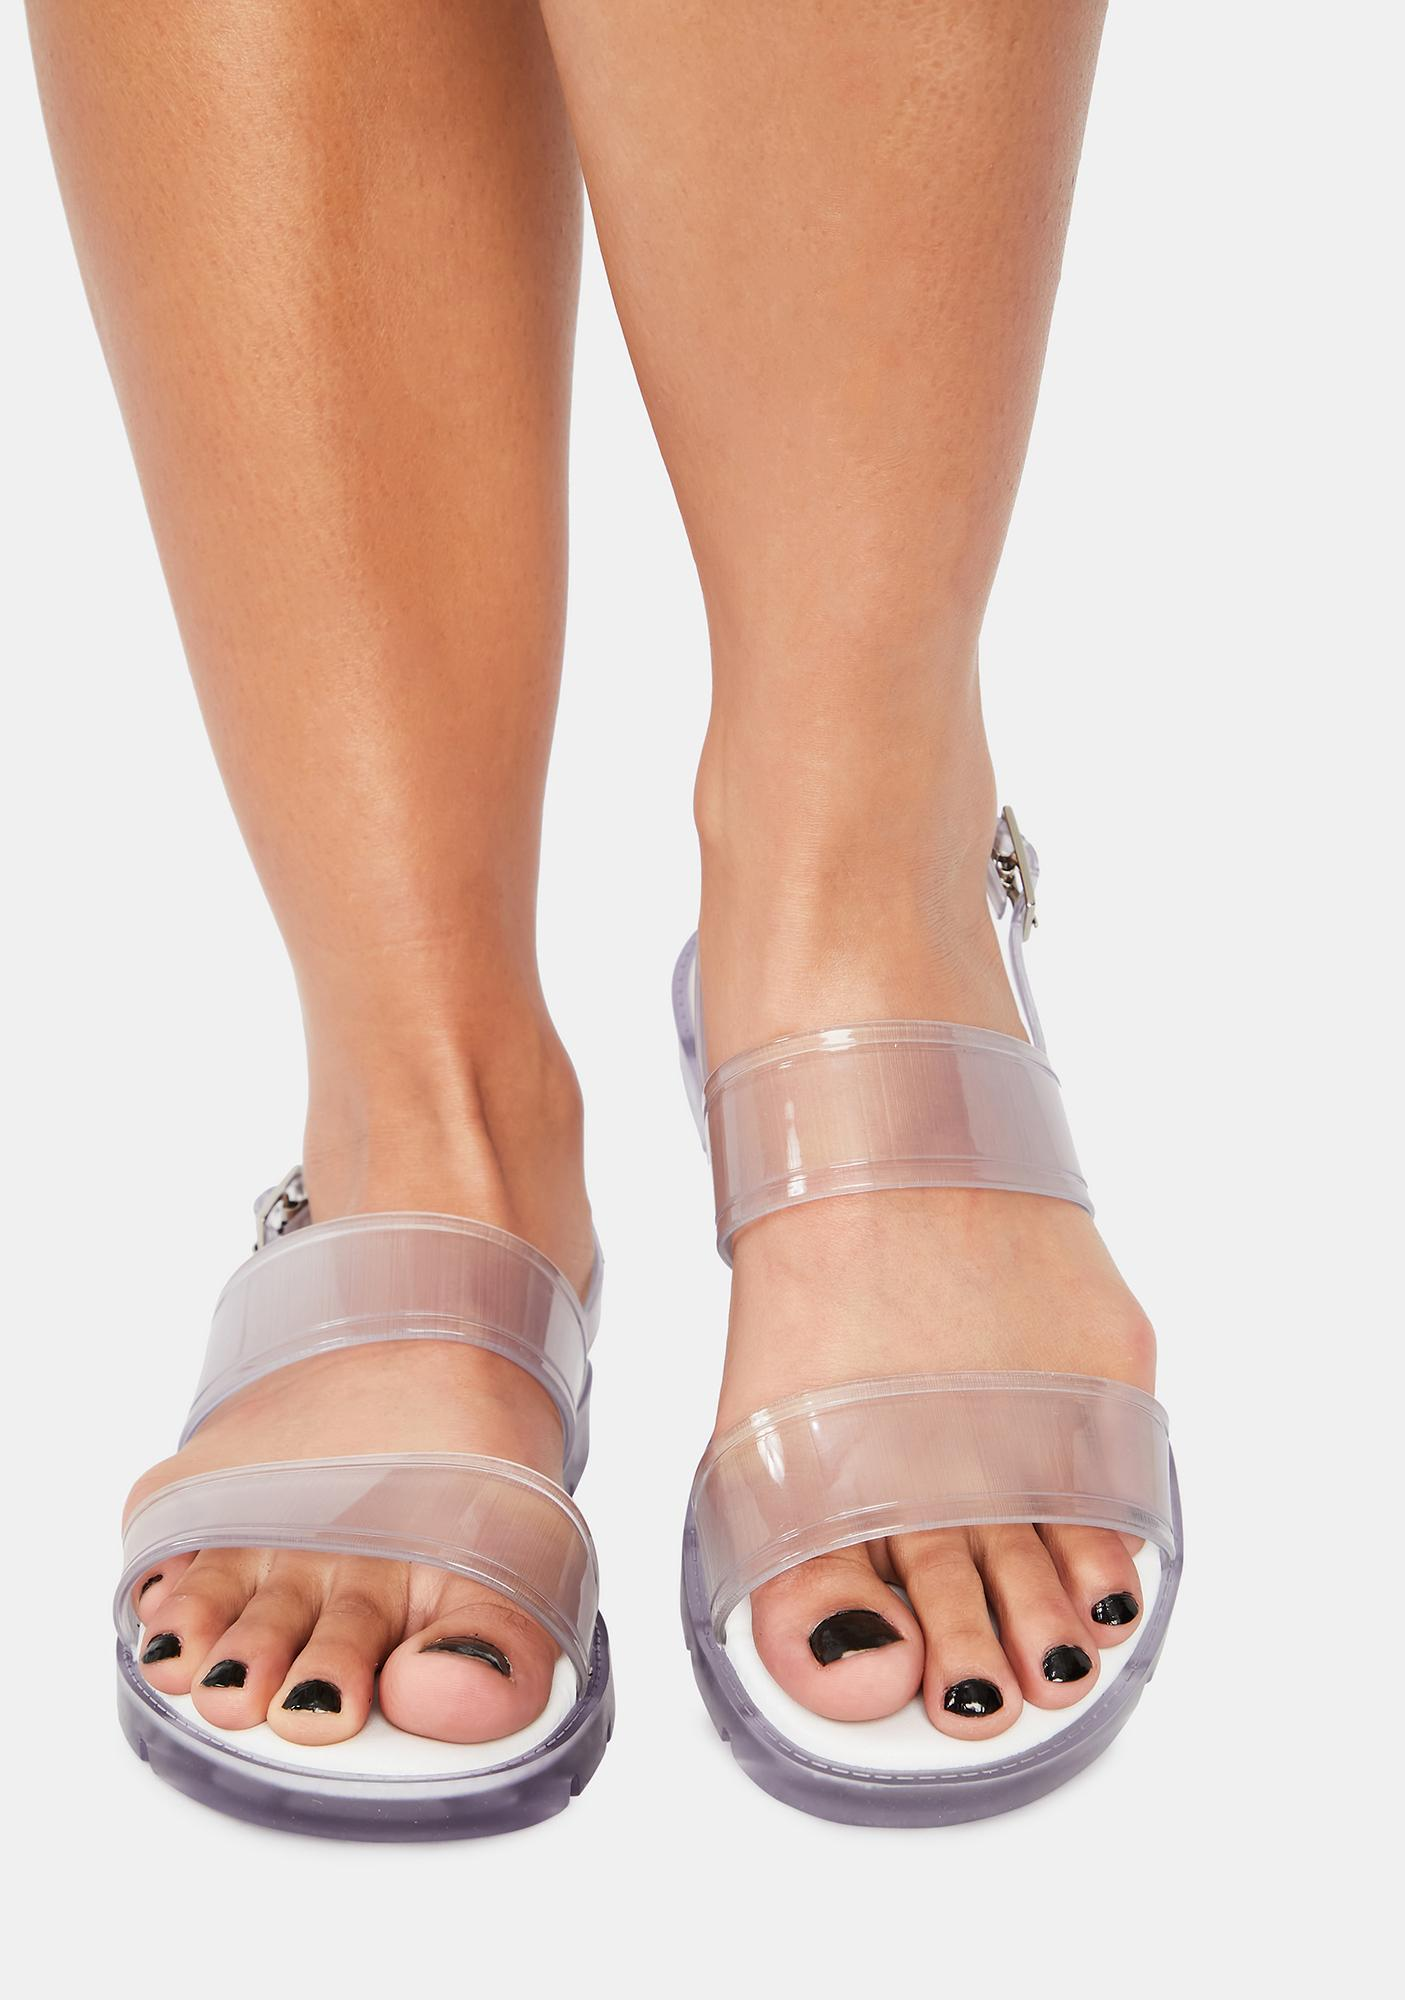 Petite Jolie Clearly Arlington Jelly Sandals